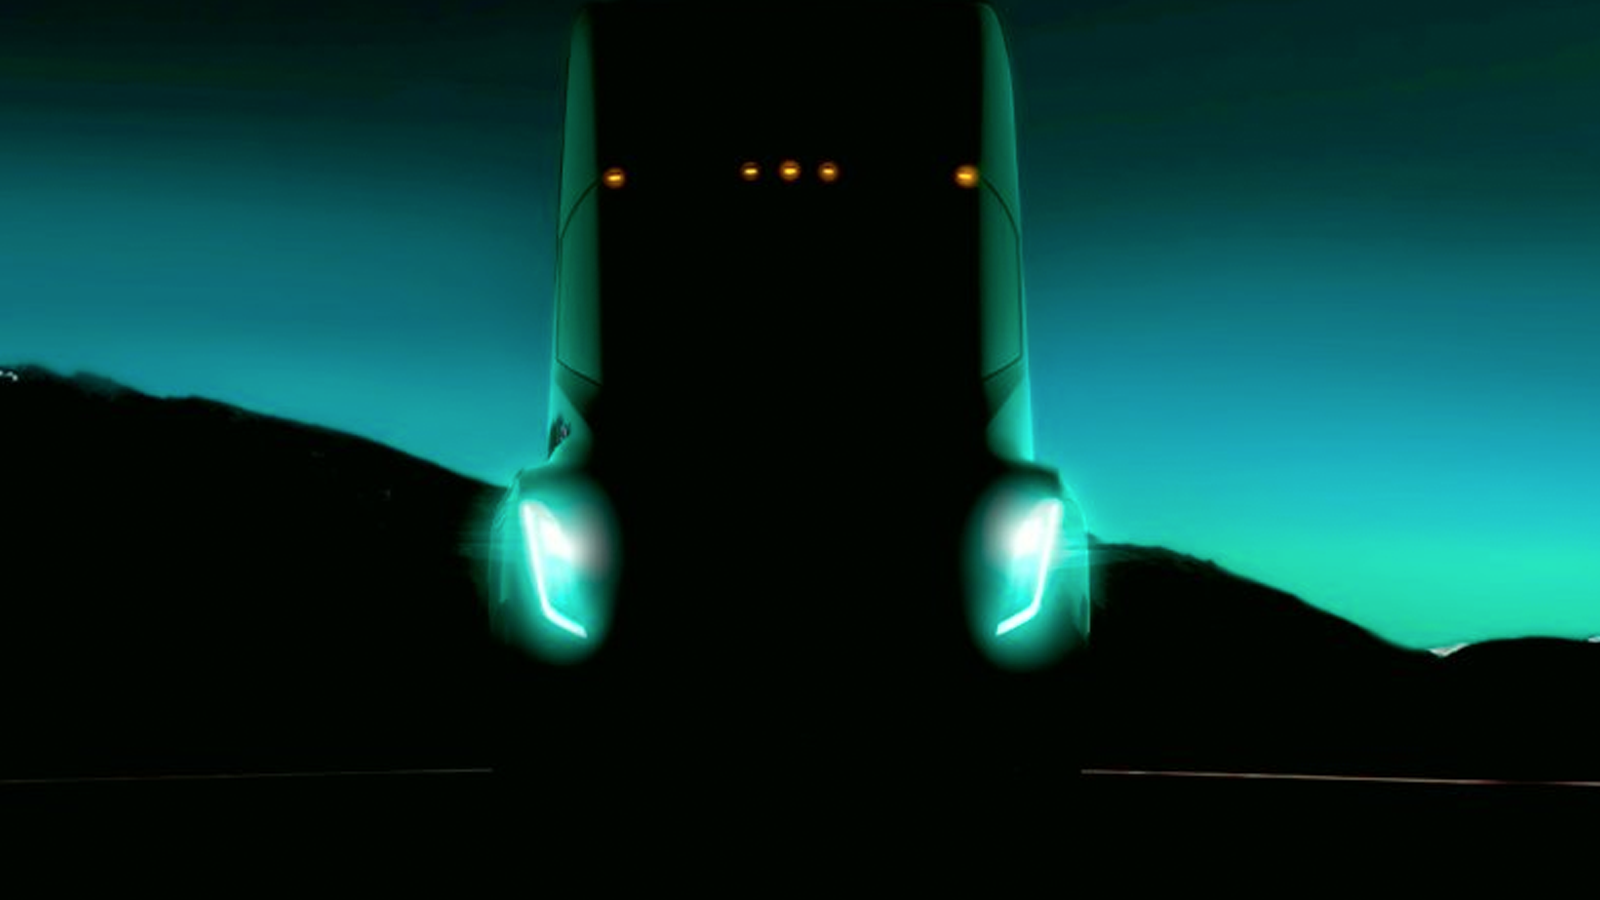 Tesla's teaser image of the semi truck